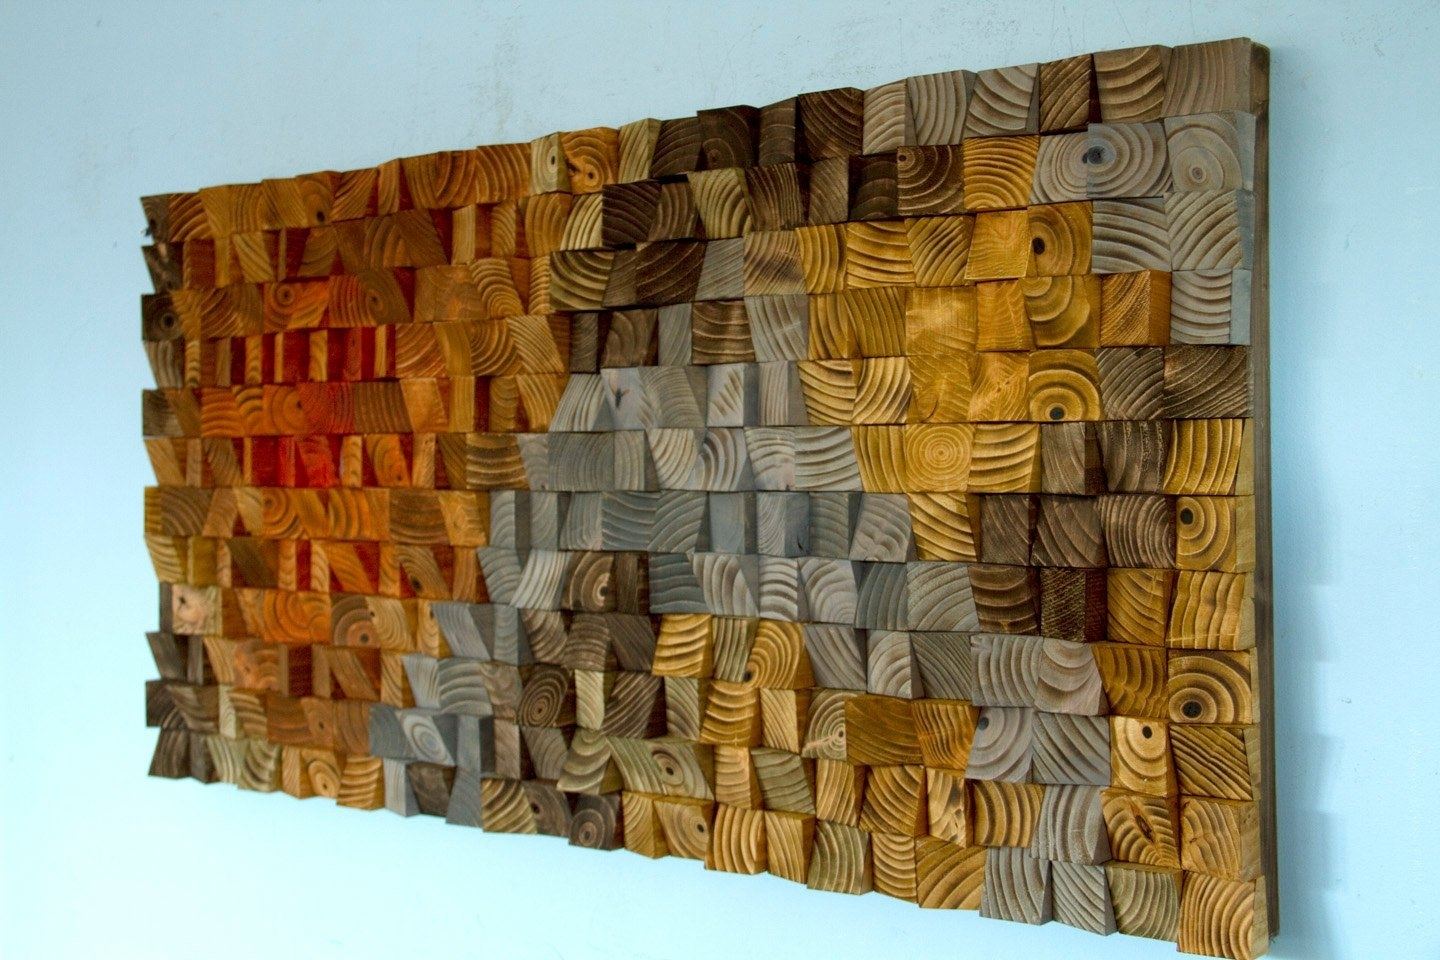 Rustic Wood Wall Art, Wood Wall Sculpture, Abstract Wood Art Pertaining To Most Popular Wood Art Wall (View 8 of 15)